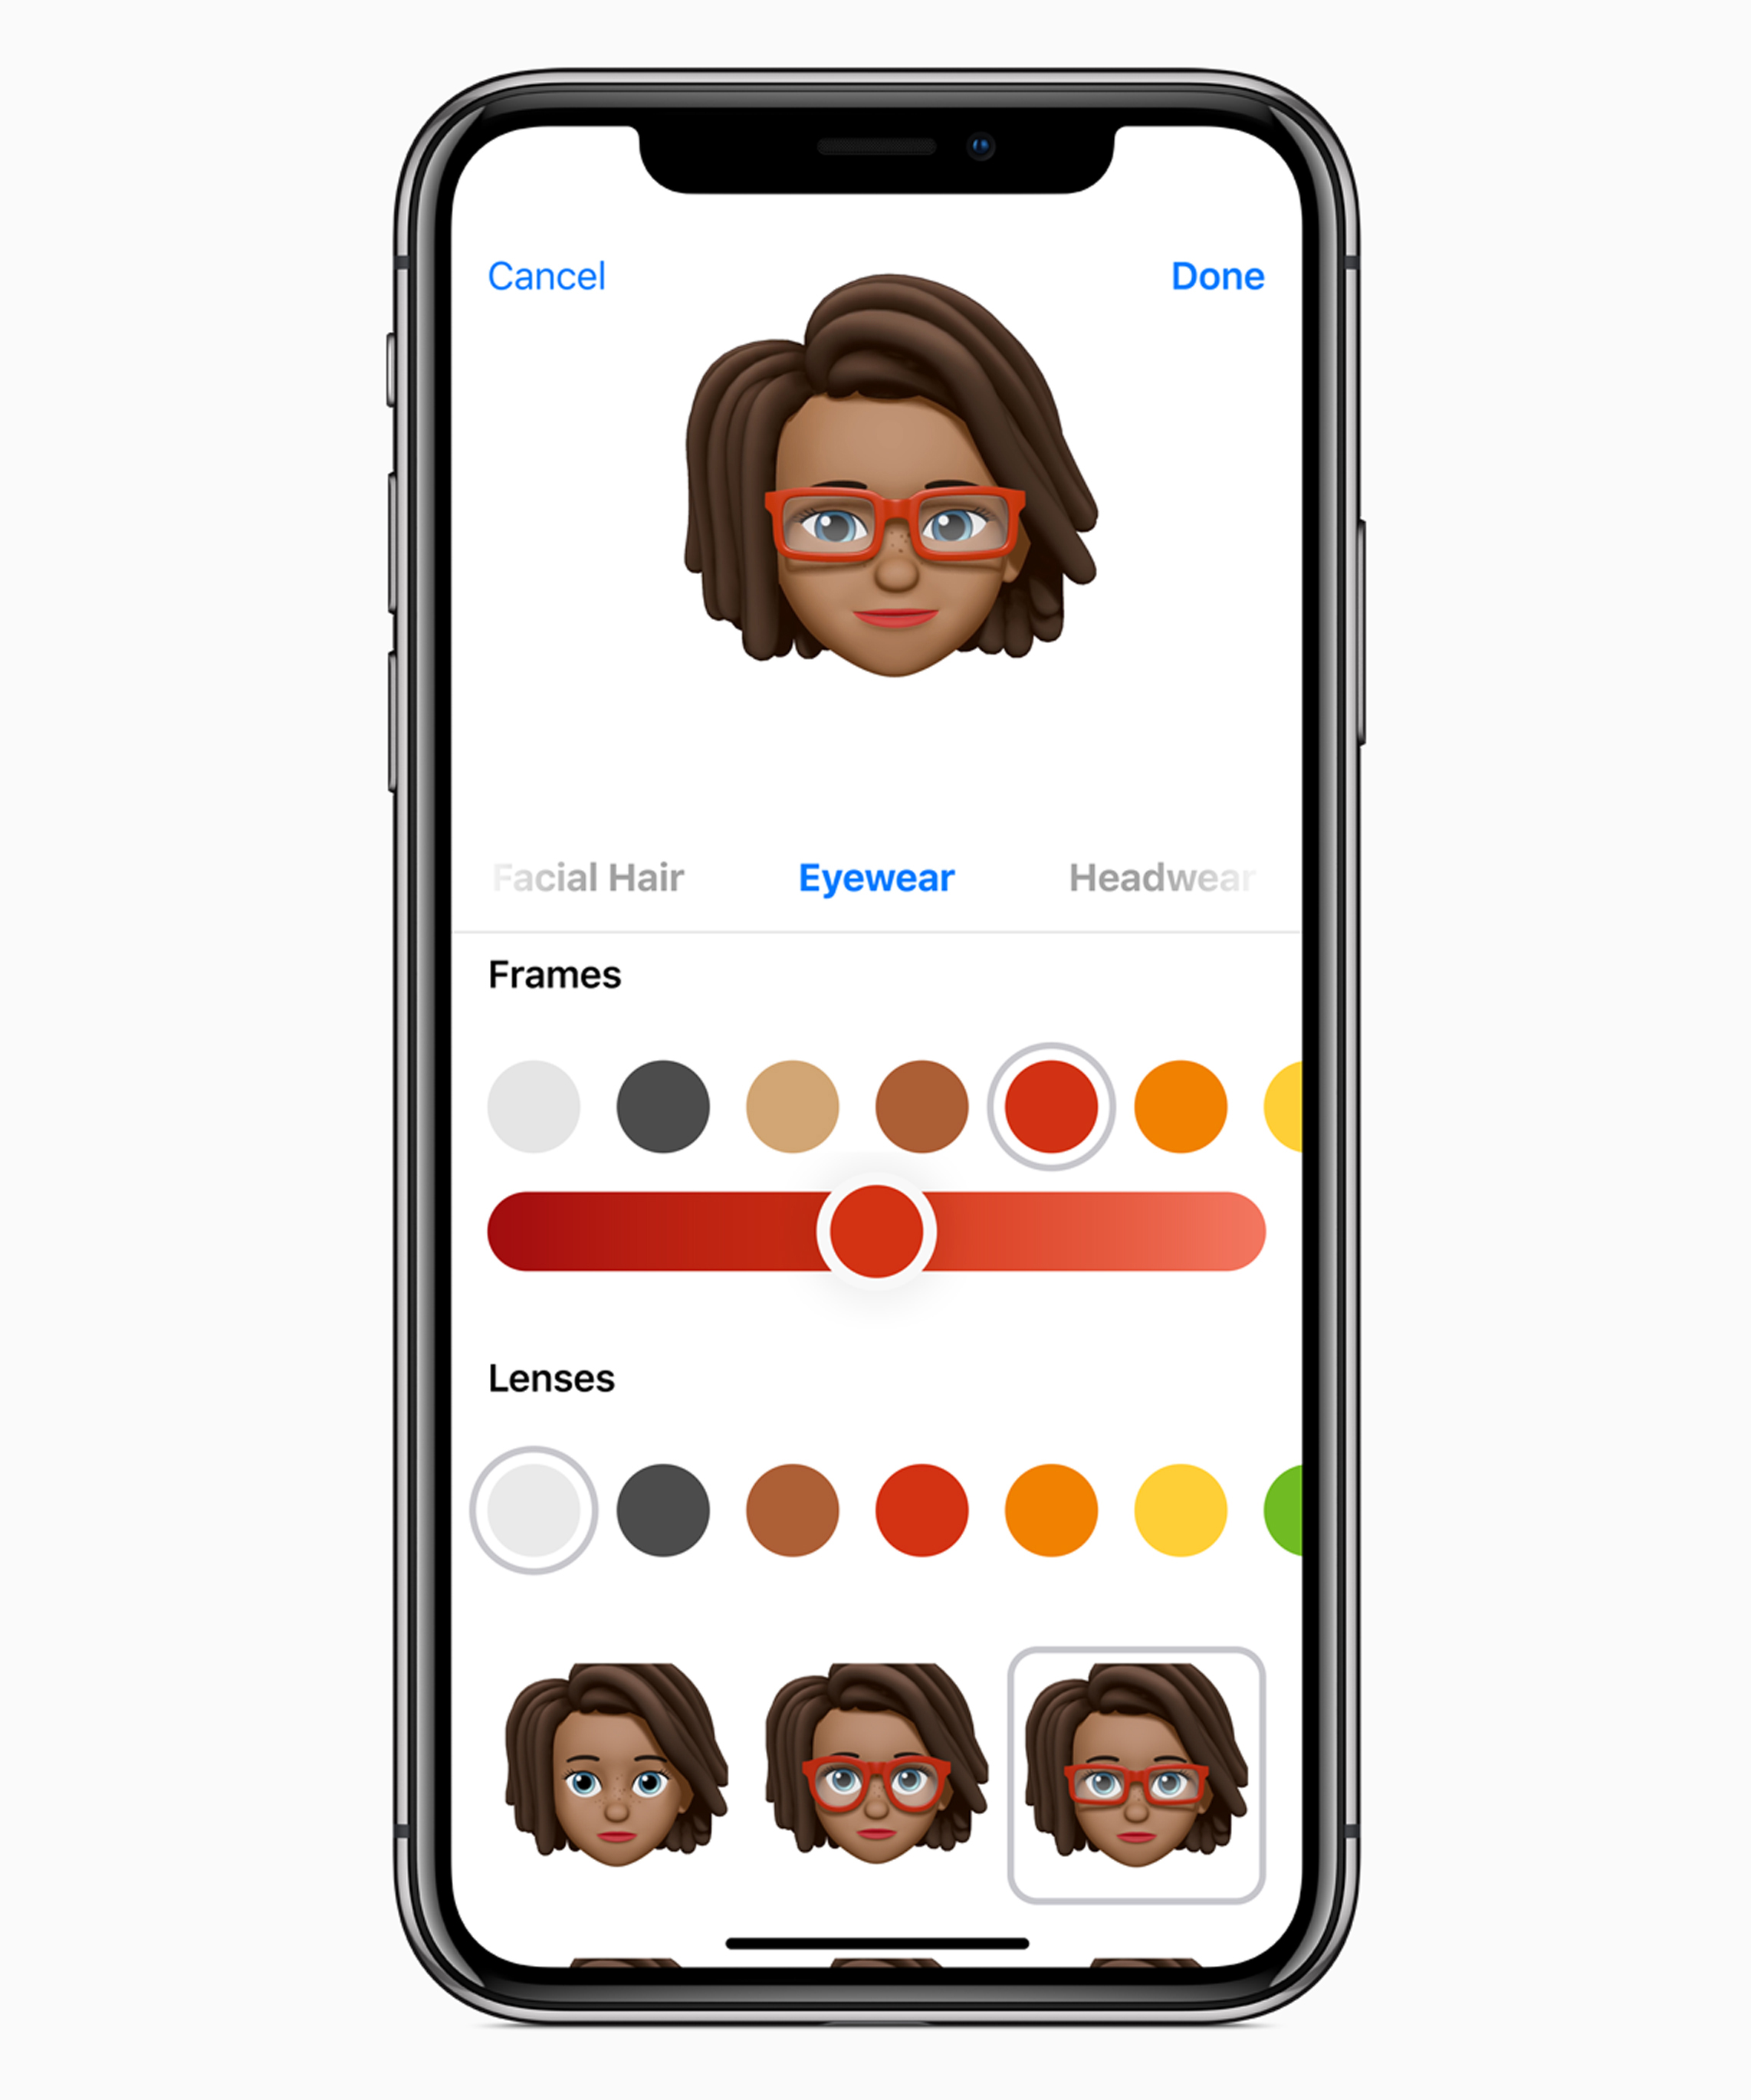 ios12_memoji-customize_06042018.jpg